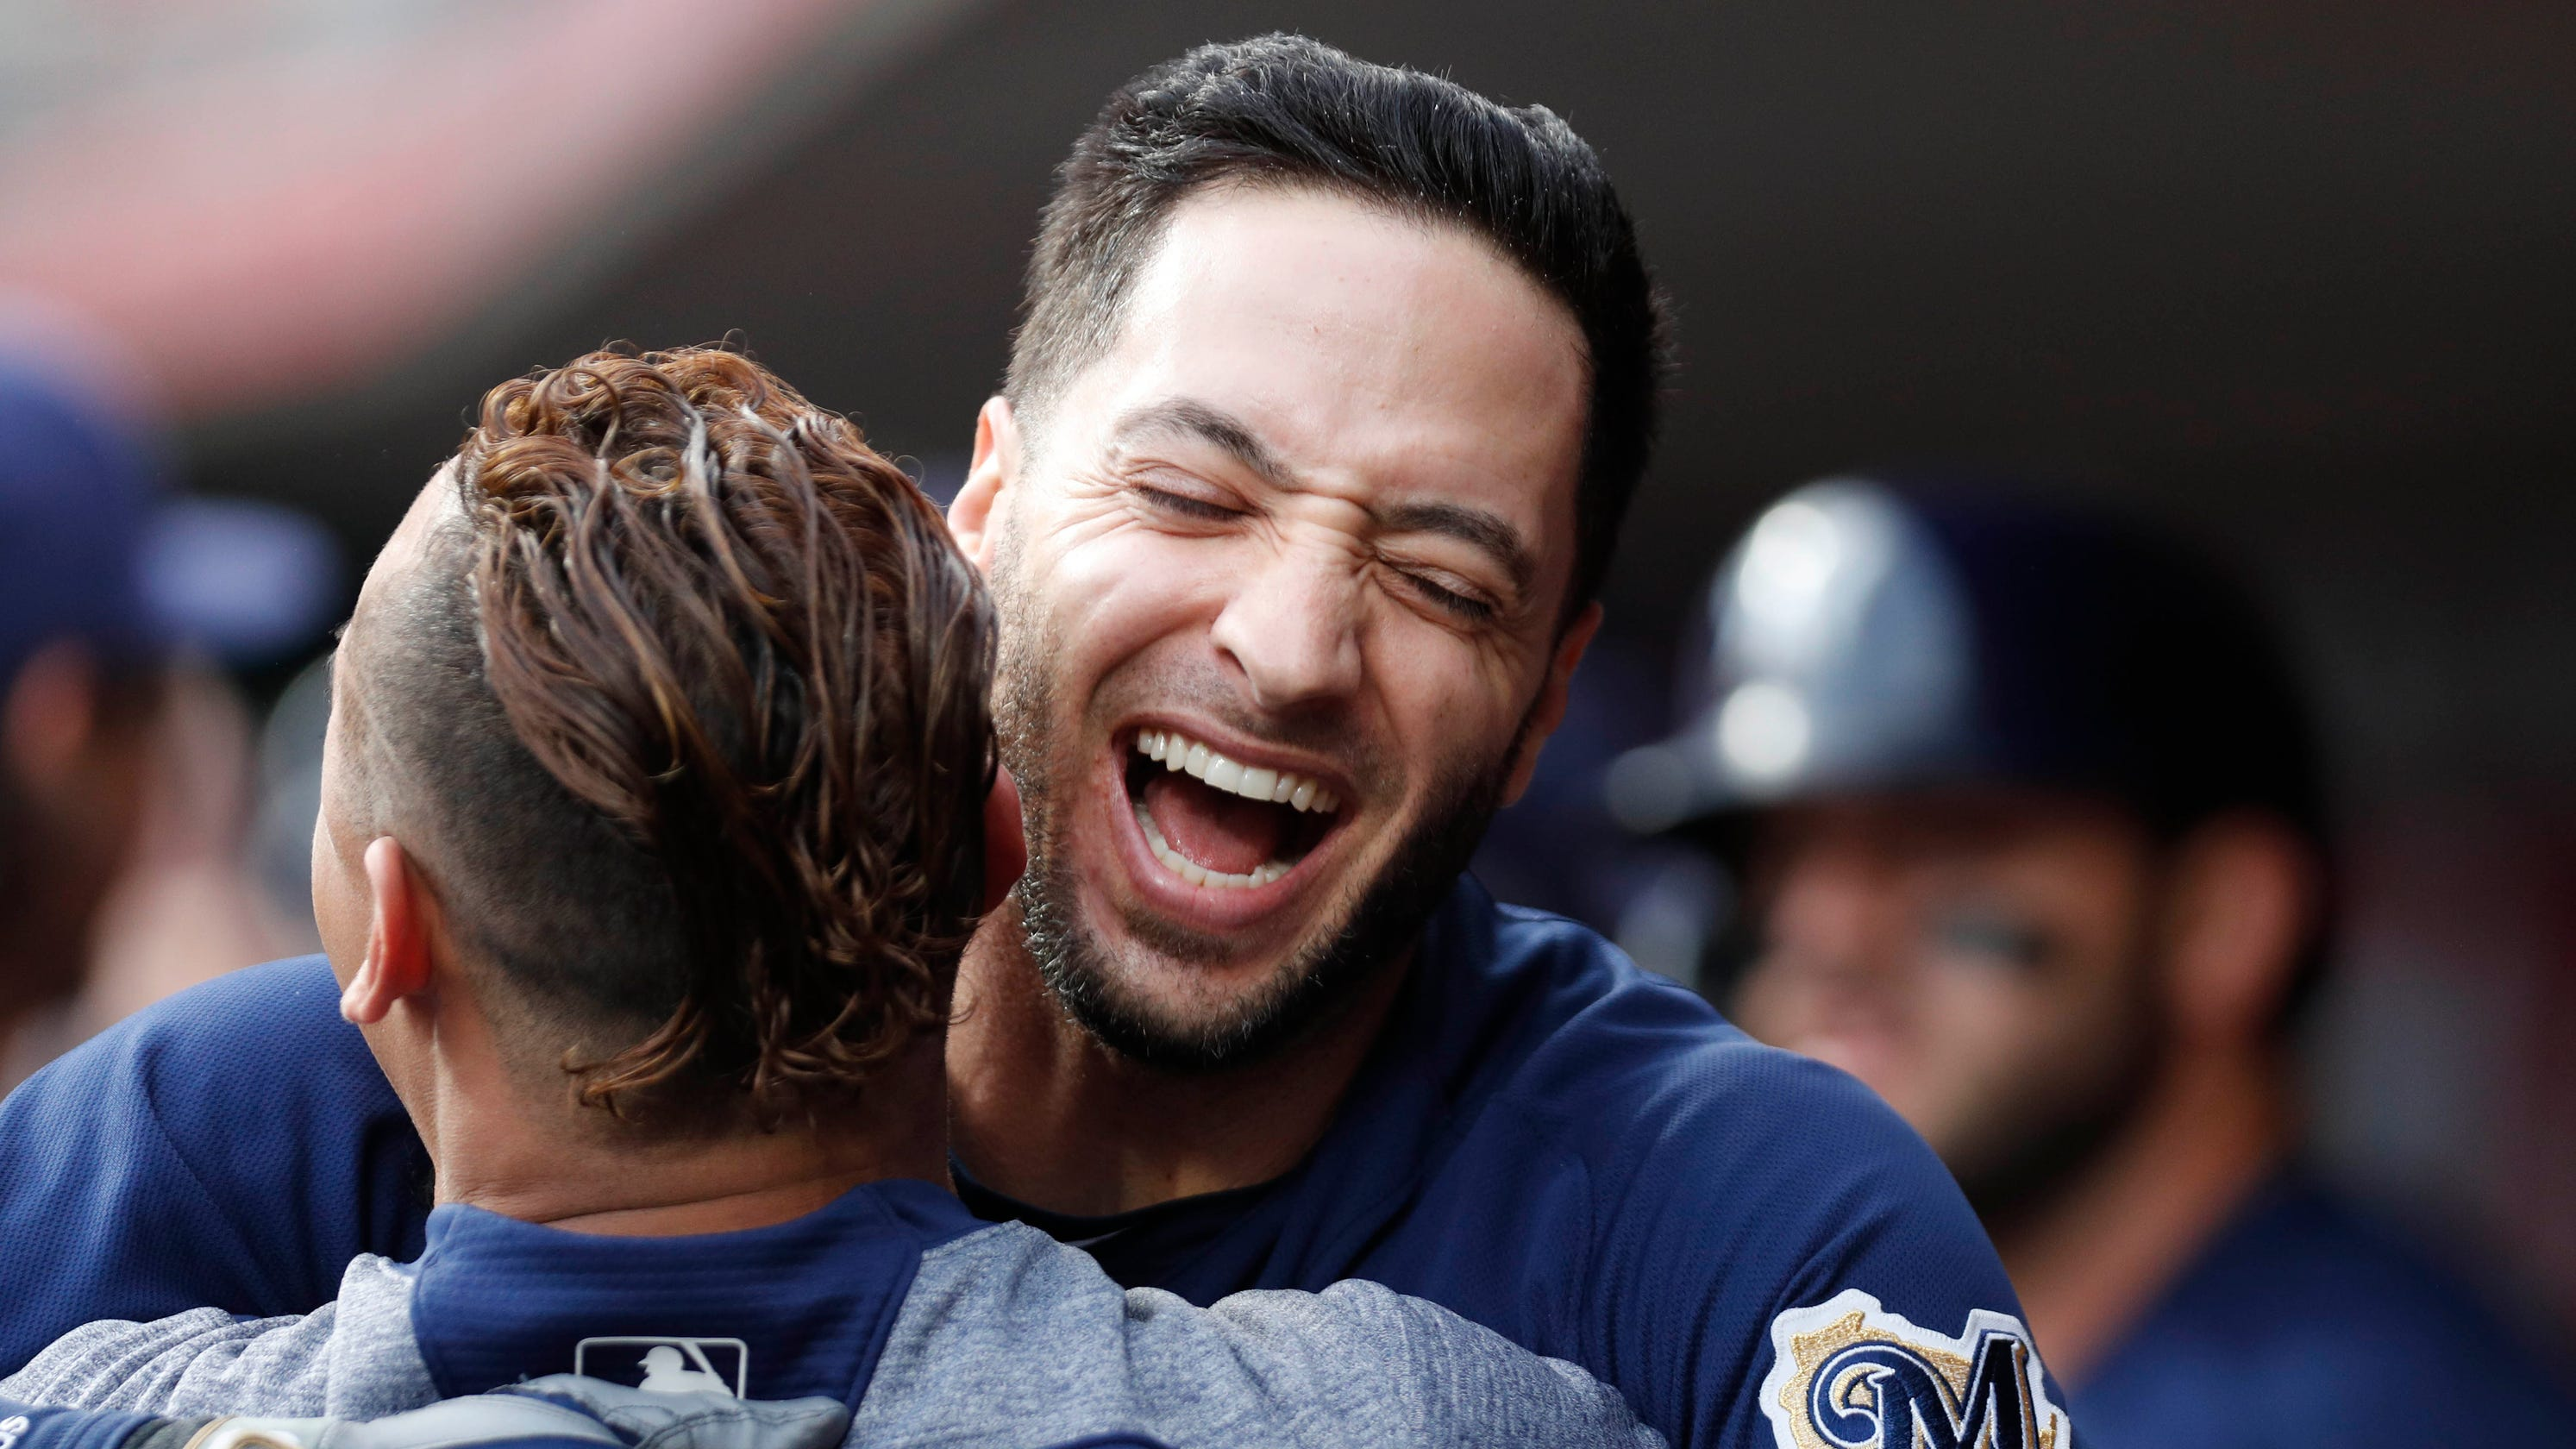 Opinion: Against all odds, the Brewers' Boys of September kept pushing to earn a playoff berth